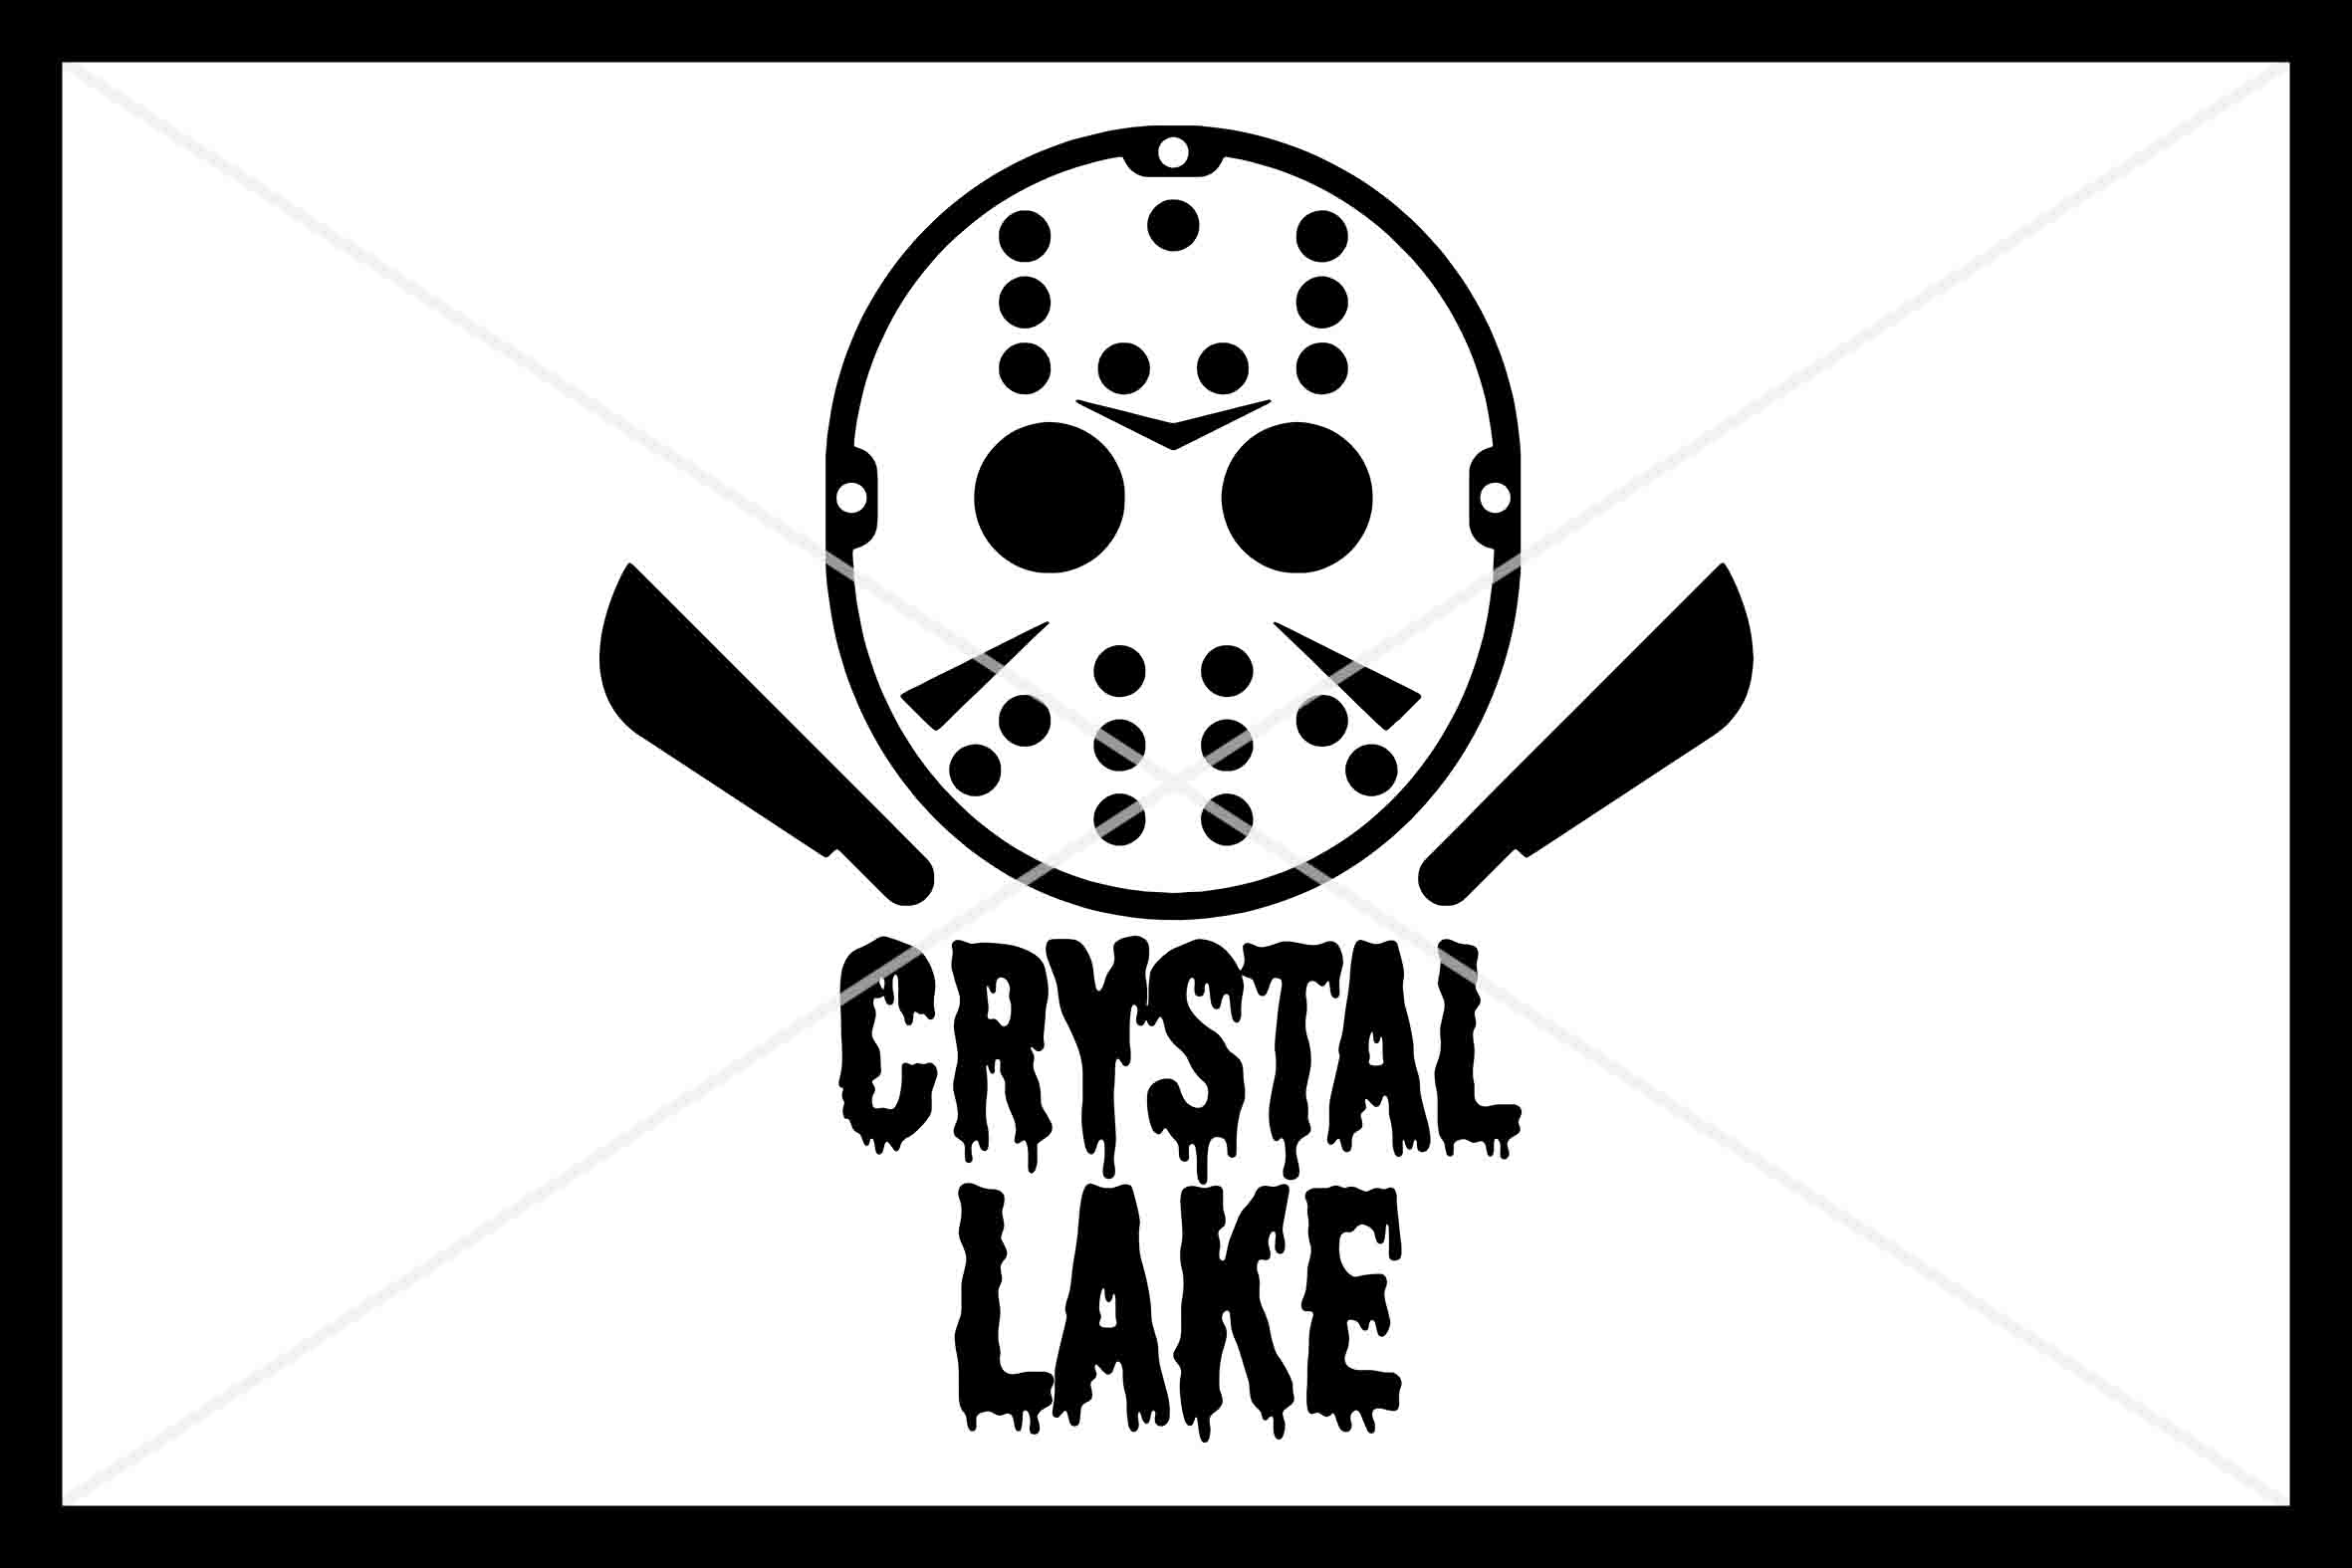 Halloween, SVG, Mask, Crystal Lake, Silhouette Cameo, Cut example image 1